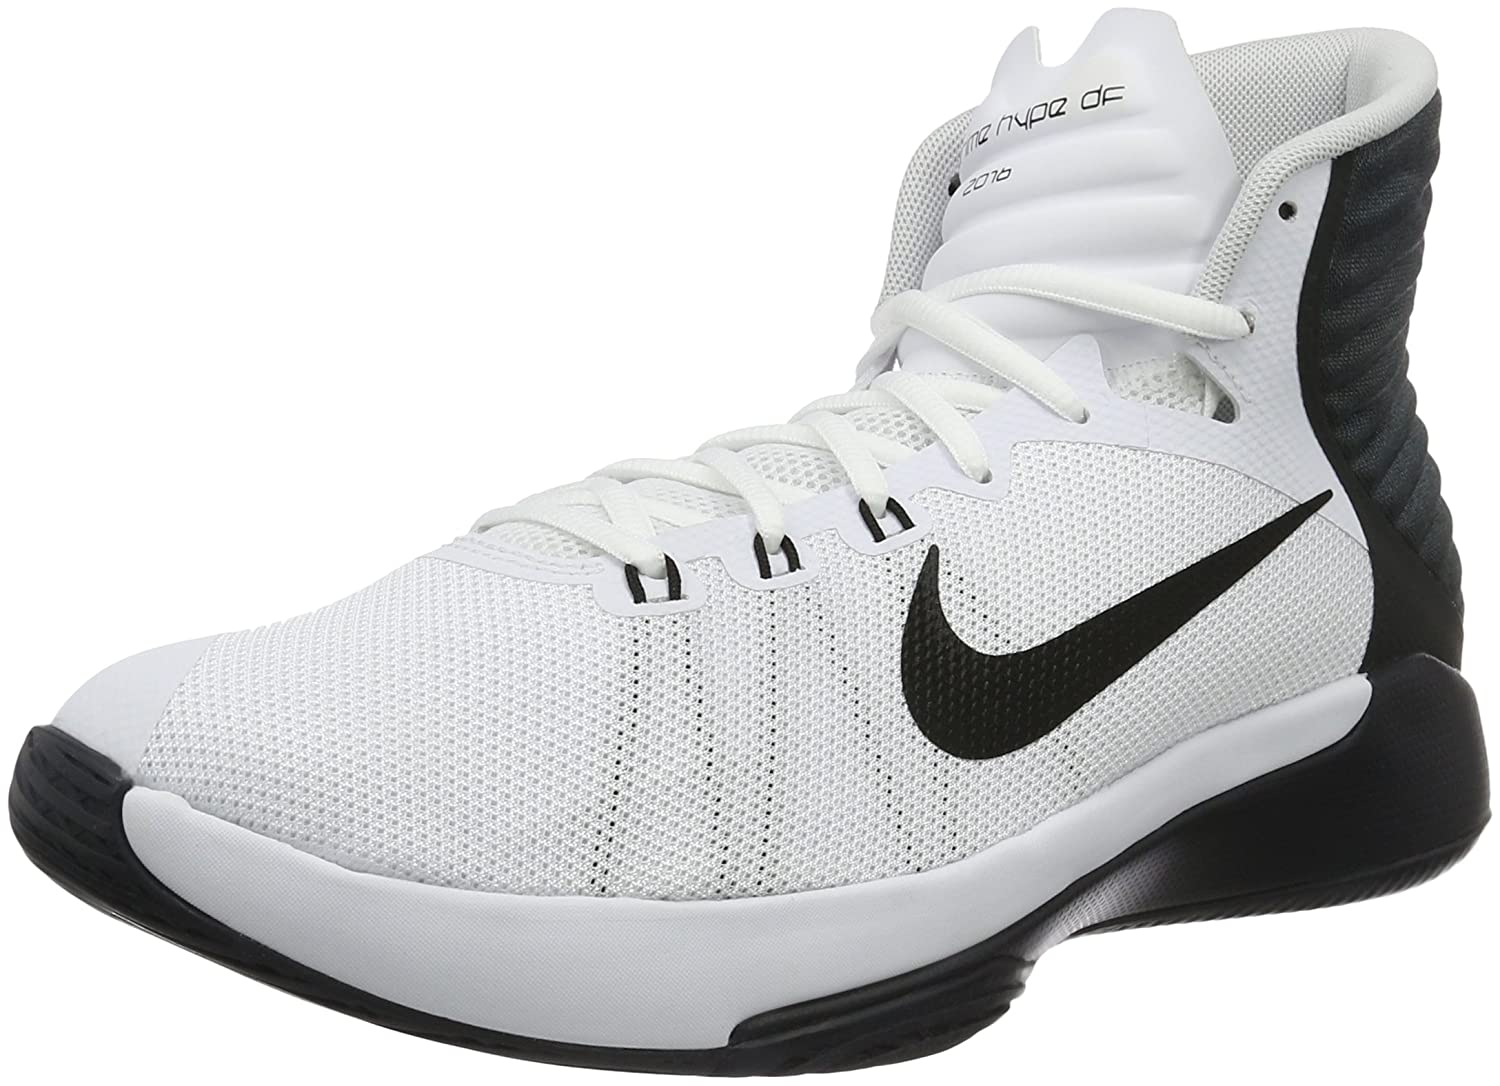 newest 29bd1 4632c Amazon.com   Nike Mens Prime Hype DF 2016 Basketball Shoes White Black Anthracite  844787-100 Size 10   Basketball